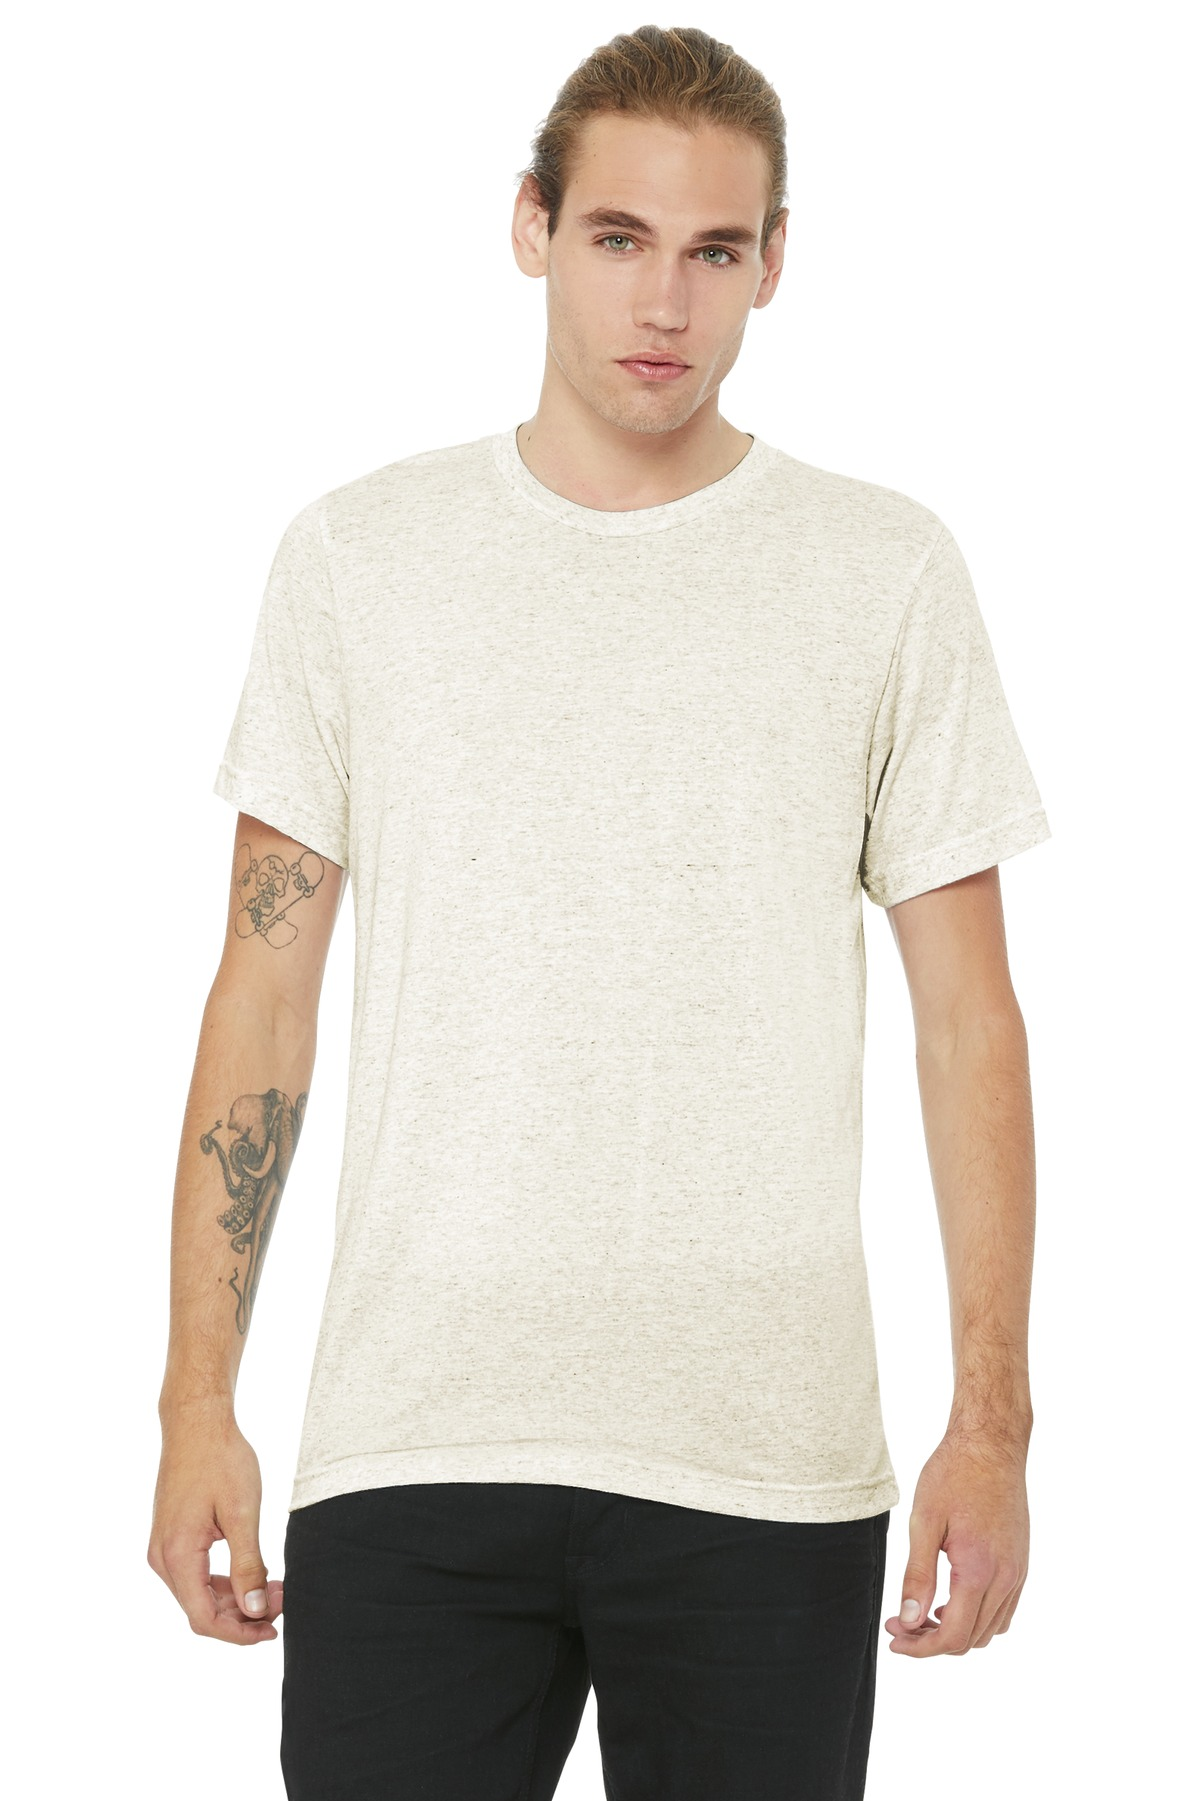 BELLA+CANVAS  ®  Unisex Triblend Short Sleeve Tee. BC3413 - Oatmeal Triblend